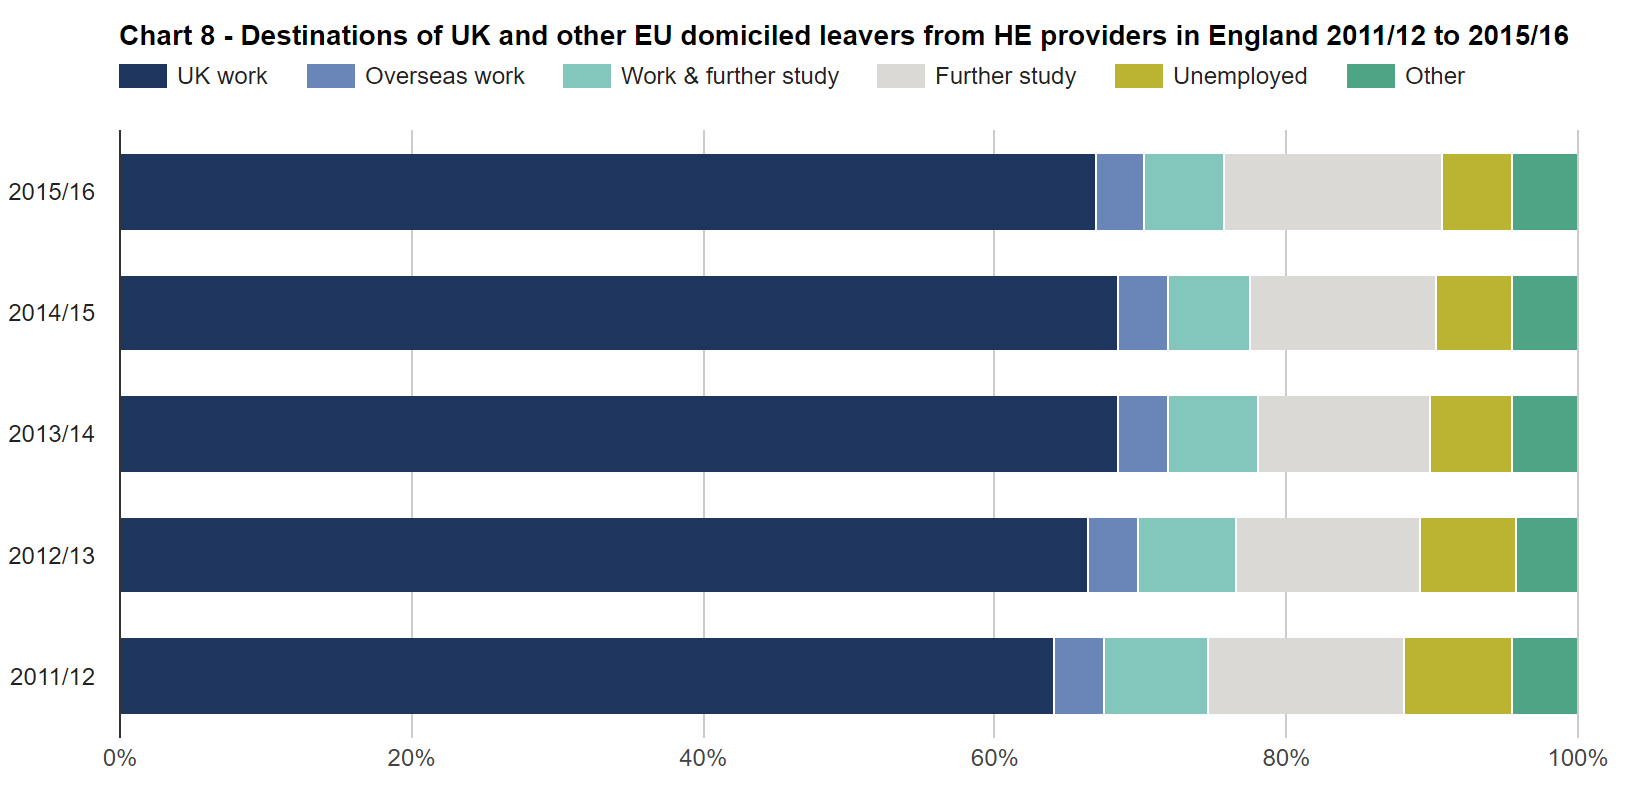 SFR245: Chart 8 - Destinations of UK and other EU domiciled leavers from HE providers in England 2011/12 to 2015/16